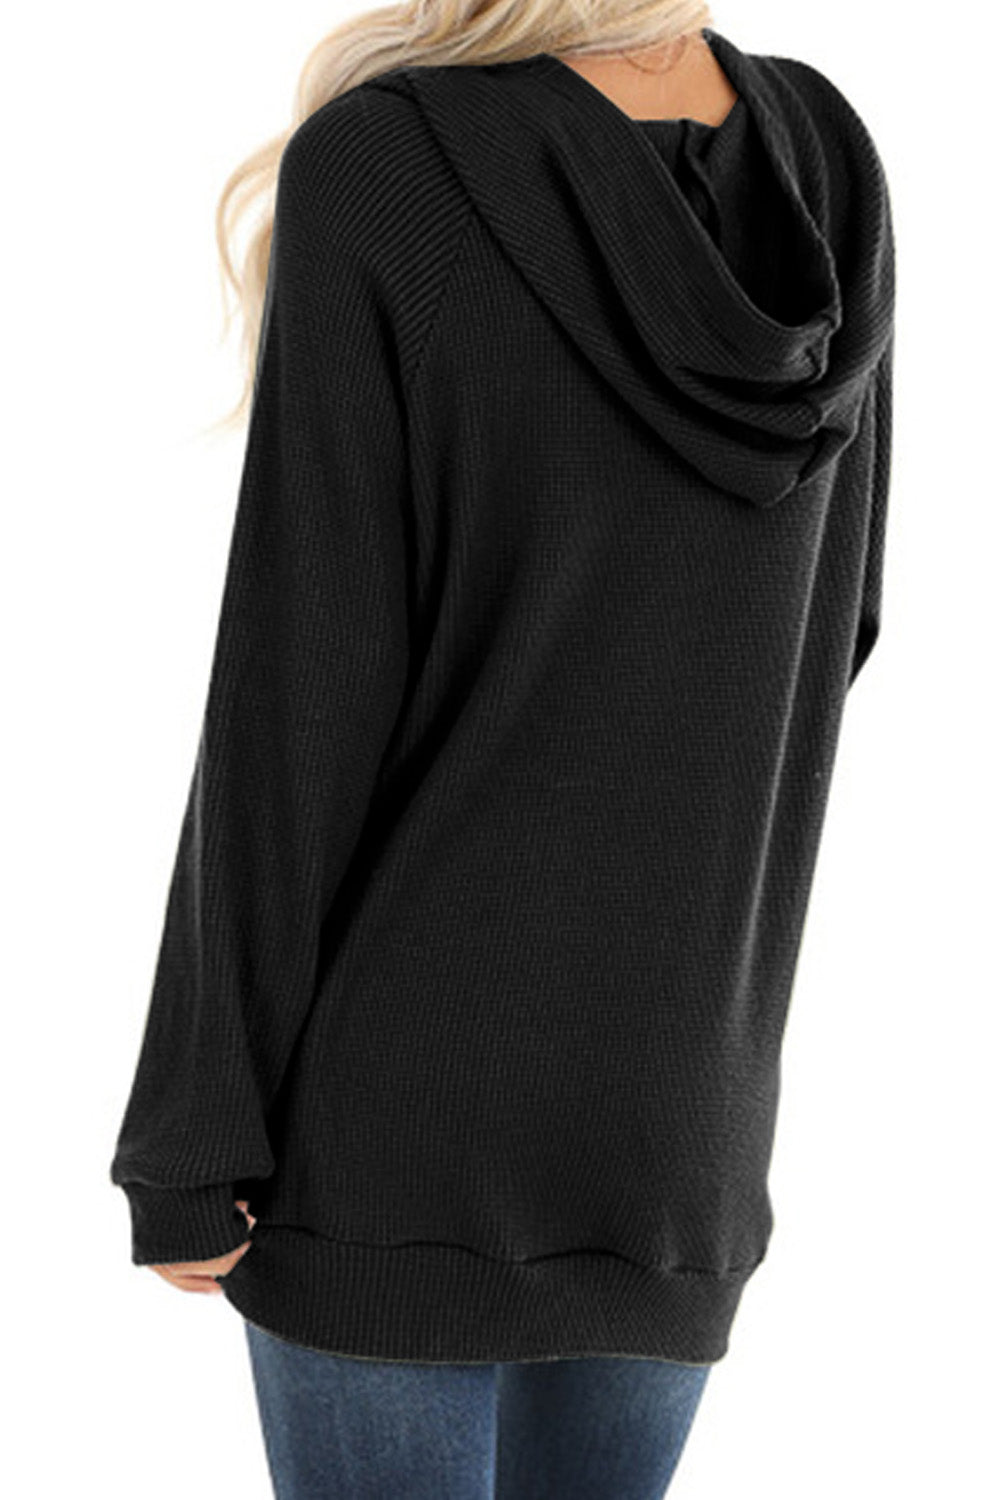 Black Waffle Knit Hooded Top with Asymmetrical Button Detail